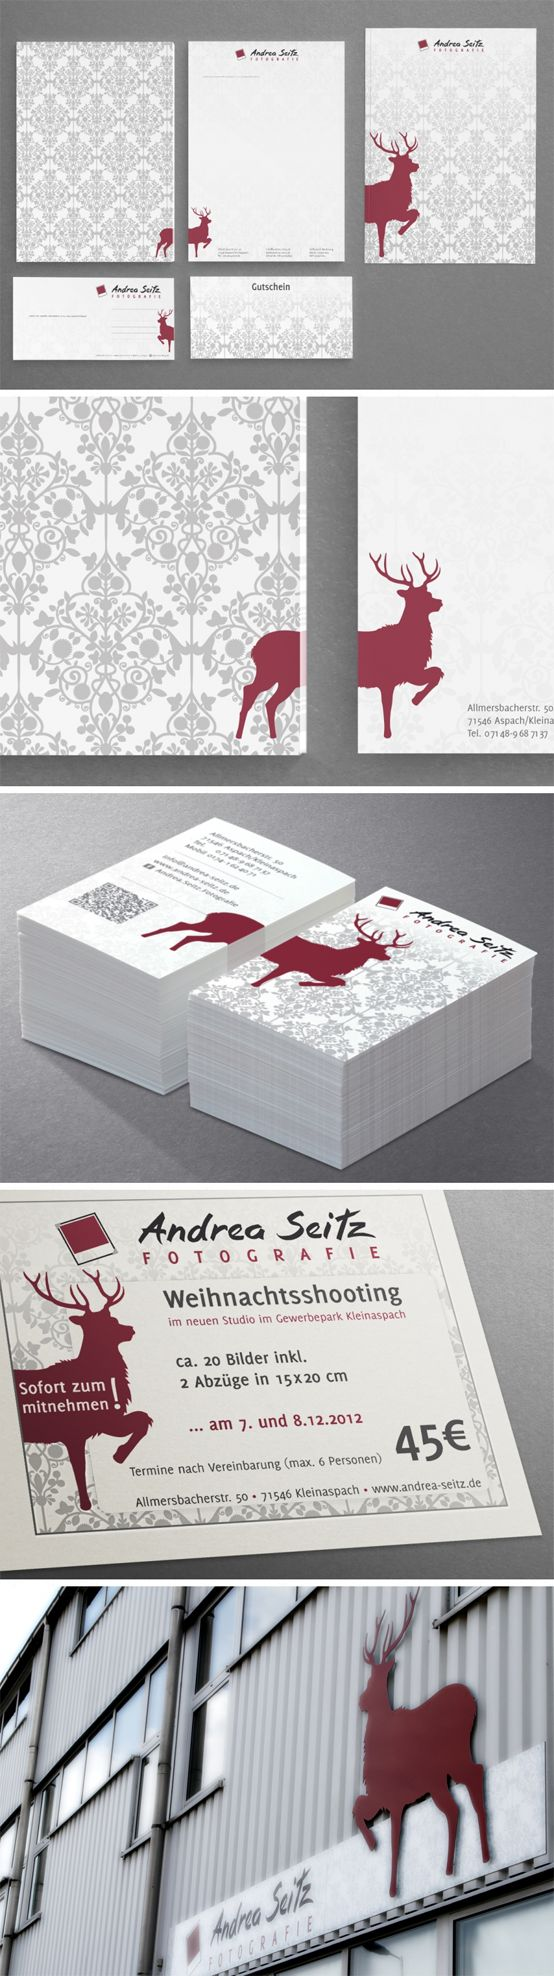 corporate design for Andrea Seitz Fotografie | #stationary #corporate #design #corporatedesign #logo #identity #branding #letterhead #briefpapier #visitenkarte #business card #Germany | made with love in Stuttgart by www.smoco.de